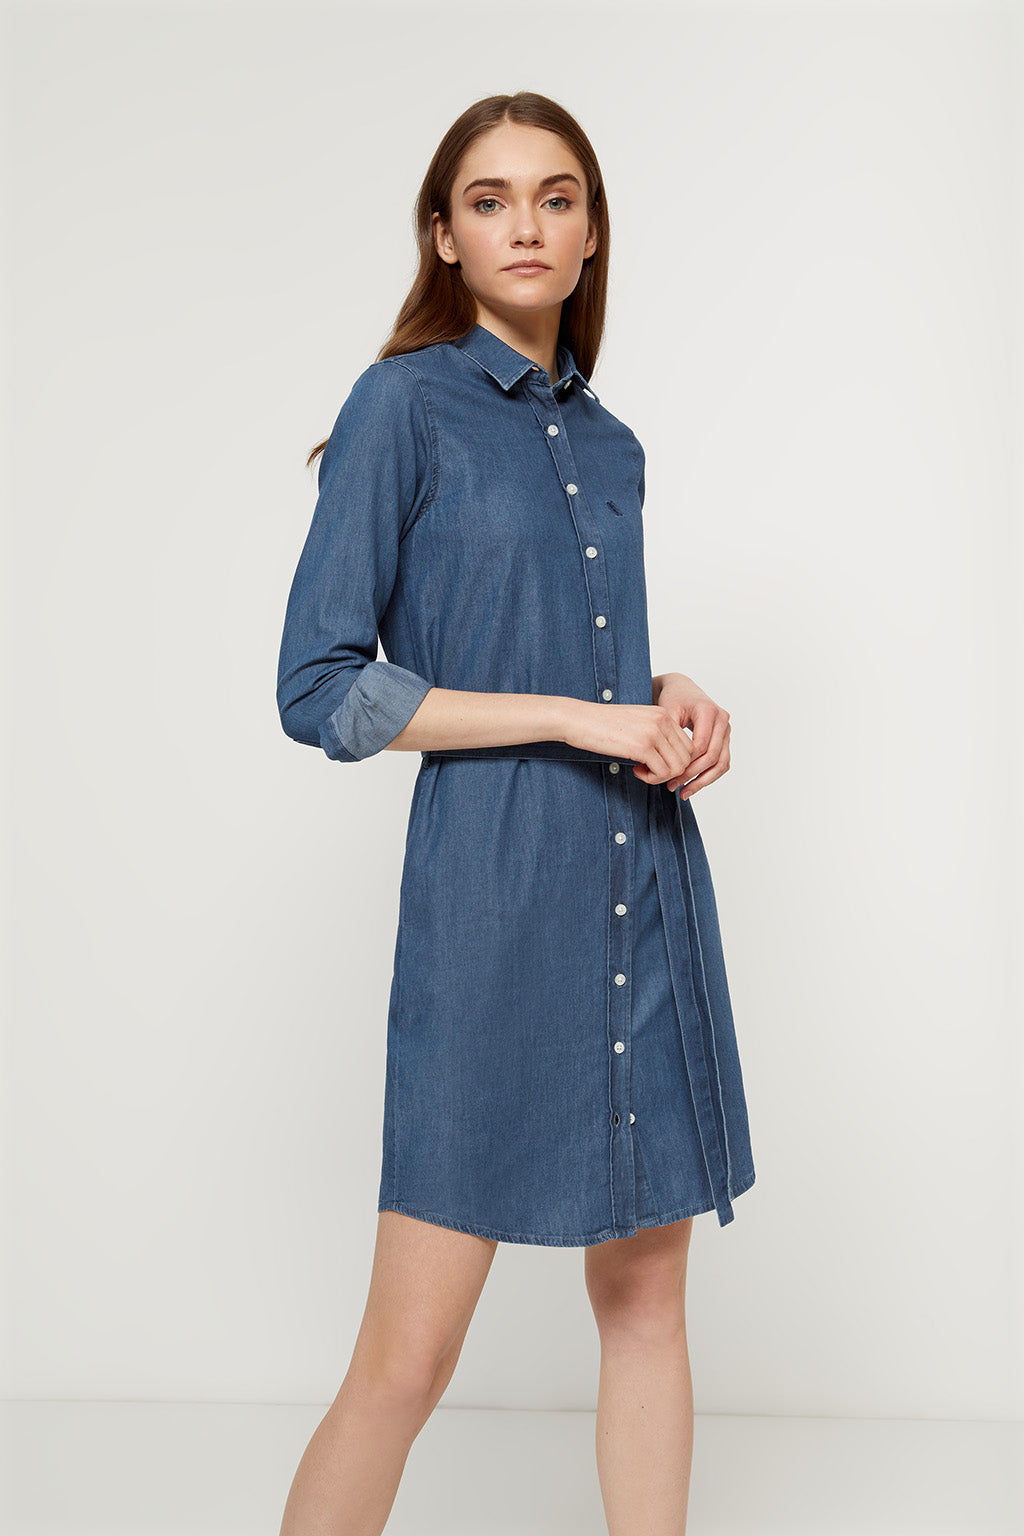 Denim shirtdress with belt